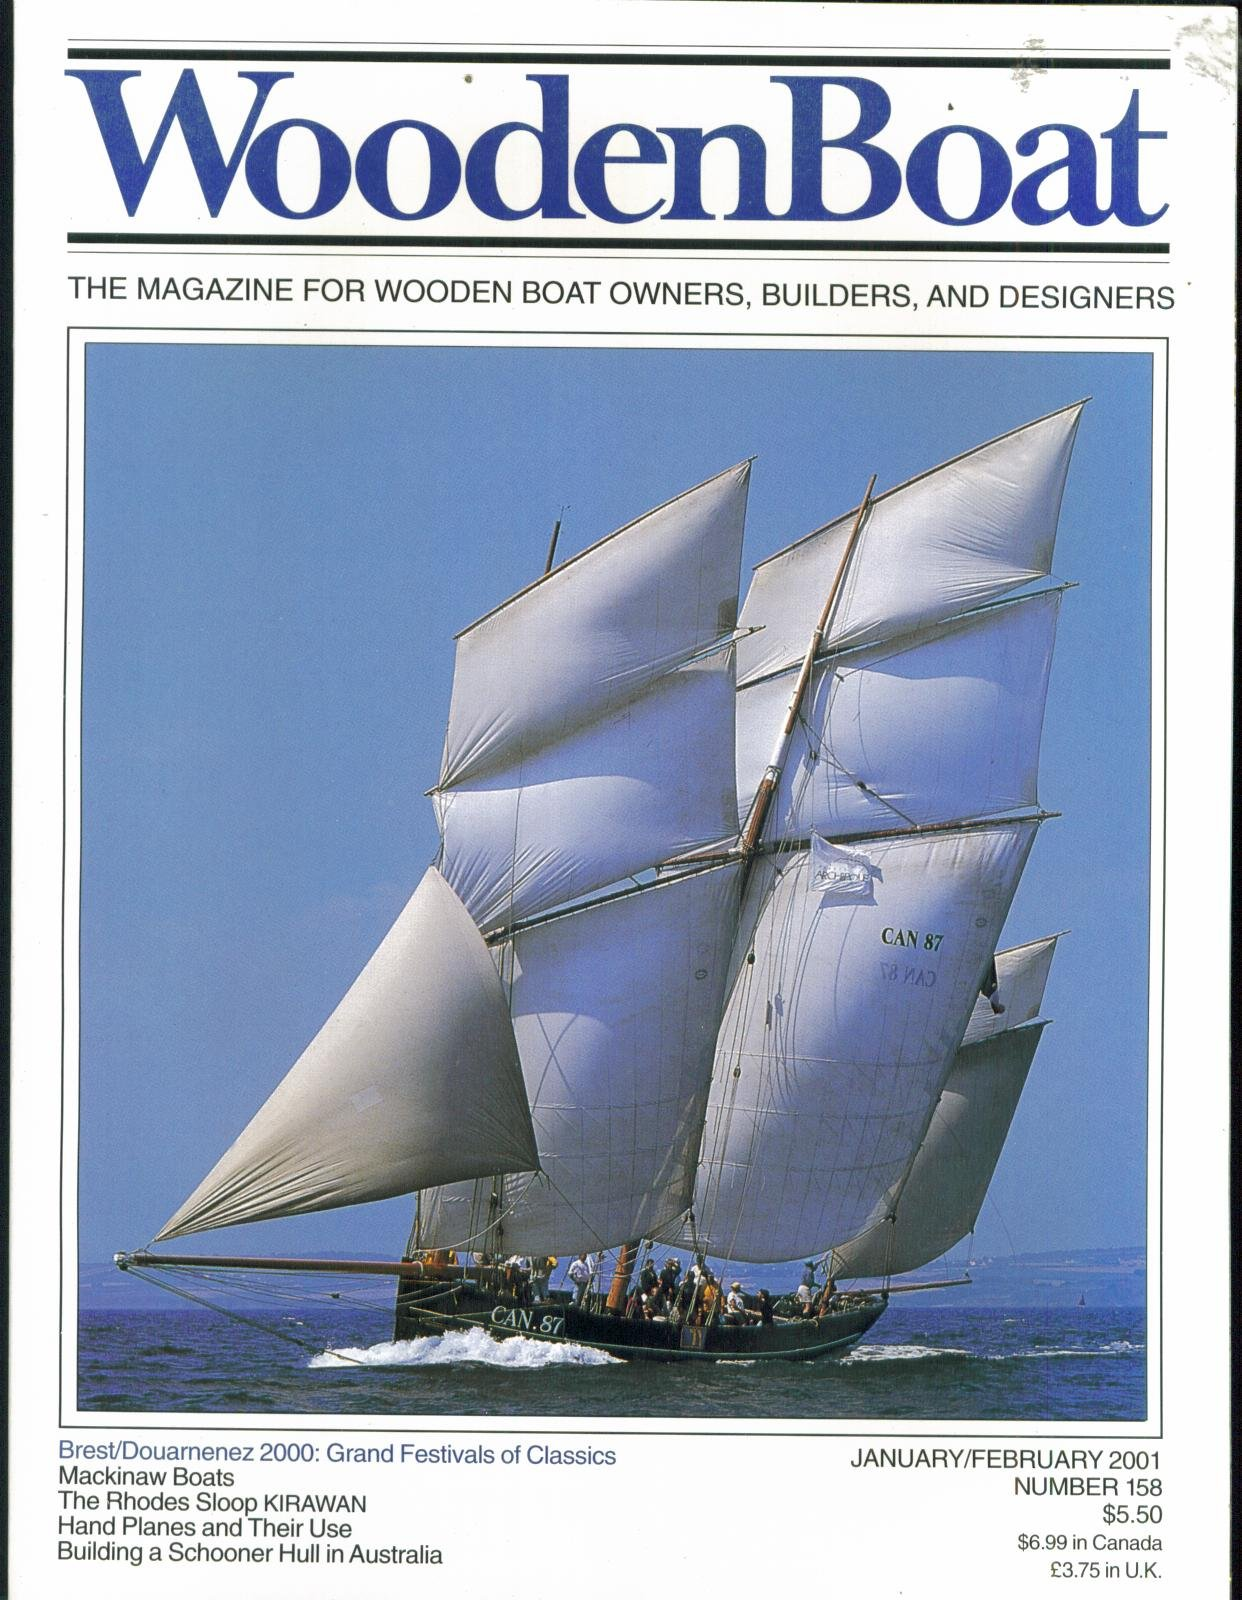 Woodenboat Wooden Boat. January February 2001. Number 158. The Magazine for Wooden Boat Owners Builders and Designers. Mackinaw Boats; the Rhodes Sloop Kirawan; Hand Planes and Their Use; Building a Schooner Hull in Australia. Single Issue Magazine.